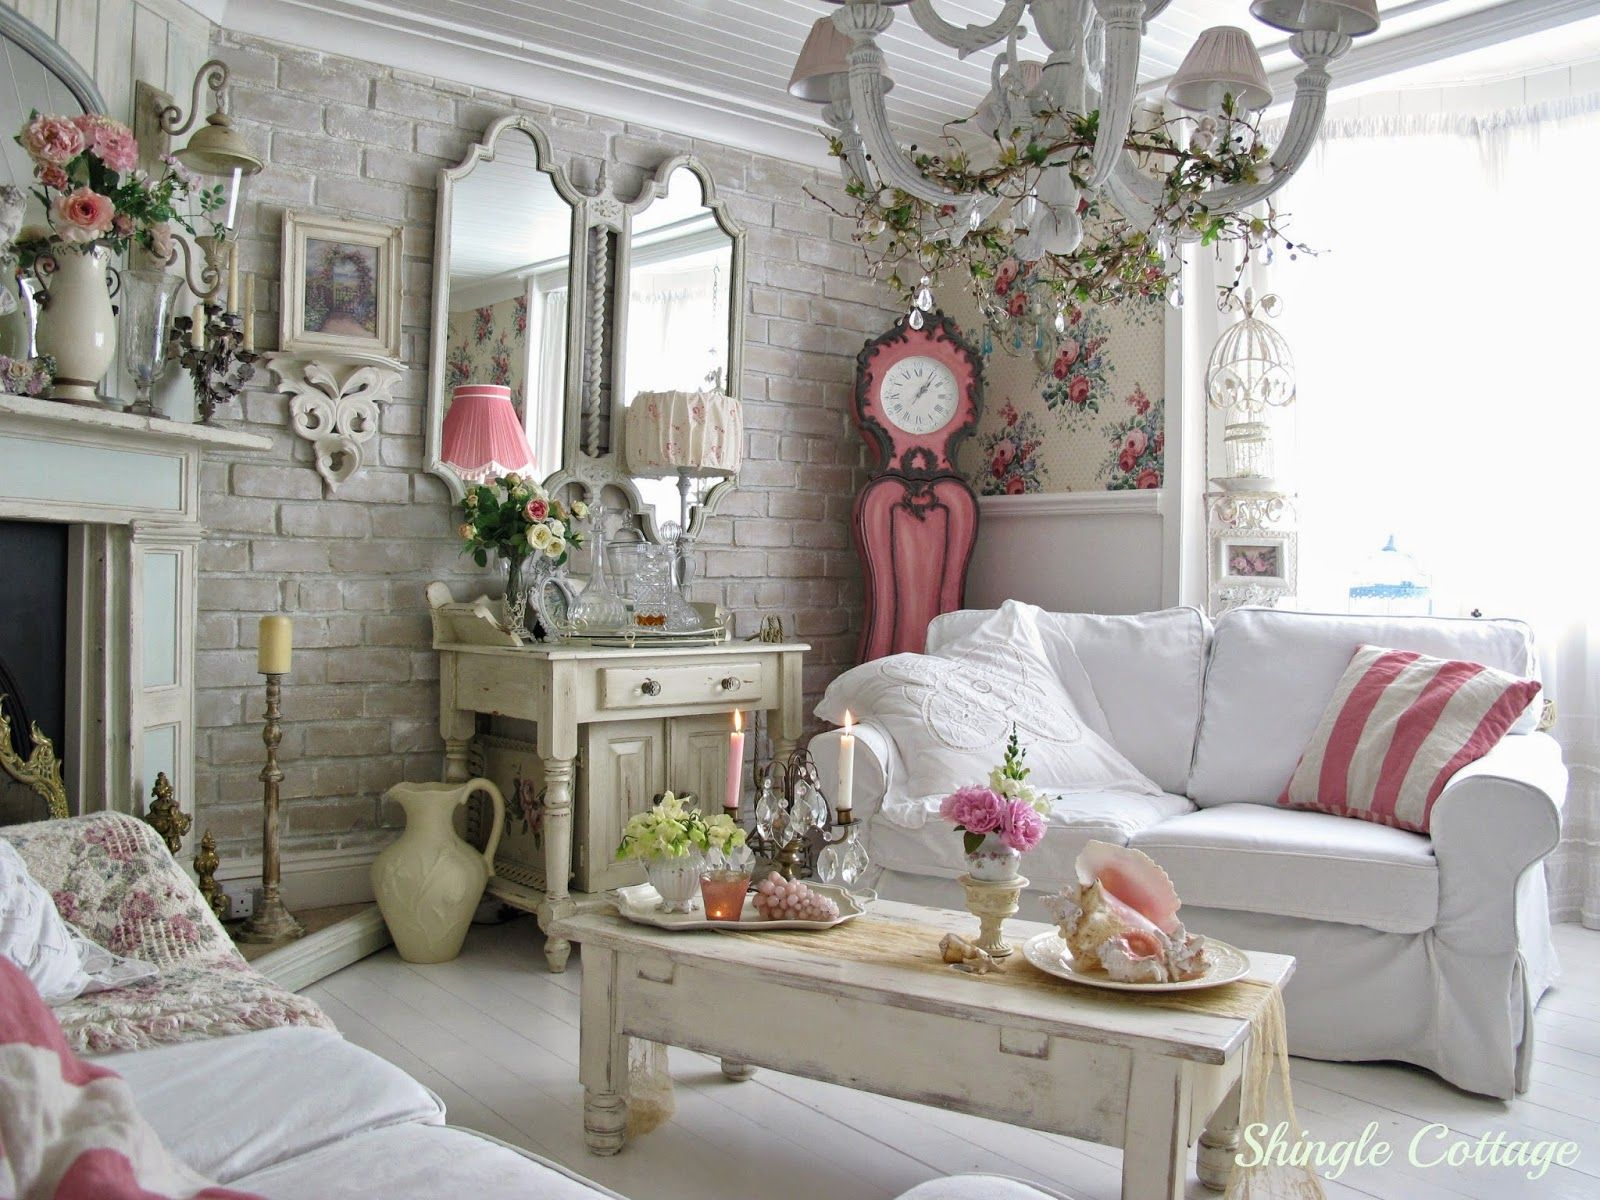 me idea english decorating country style cottage best ideas living photogiraffe design decor on interior room